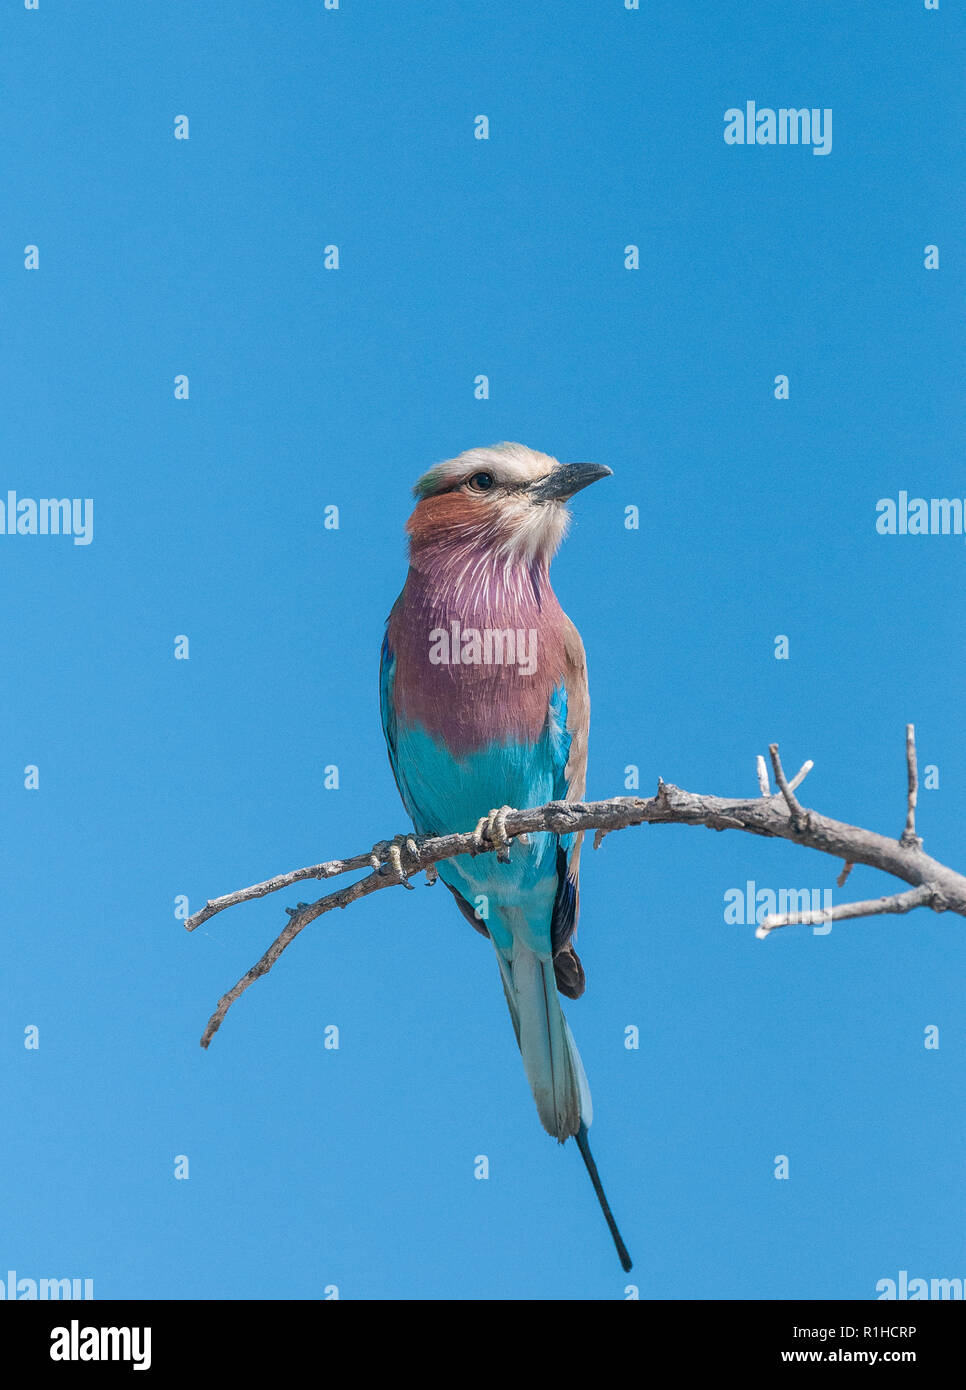 lilac breasted roller sitting in a tree with blue sky behind. Etosha national Park, Namibia - Stock Image